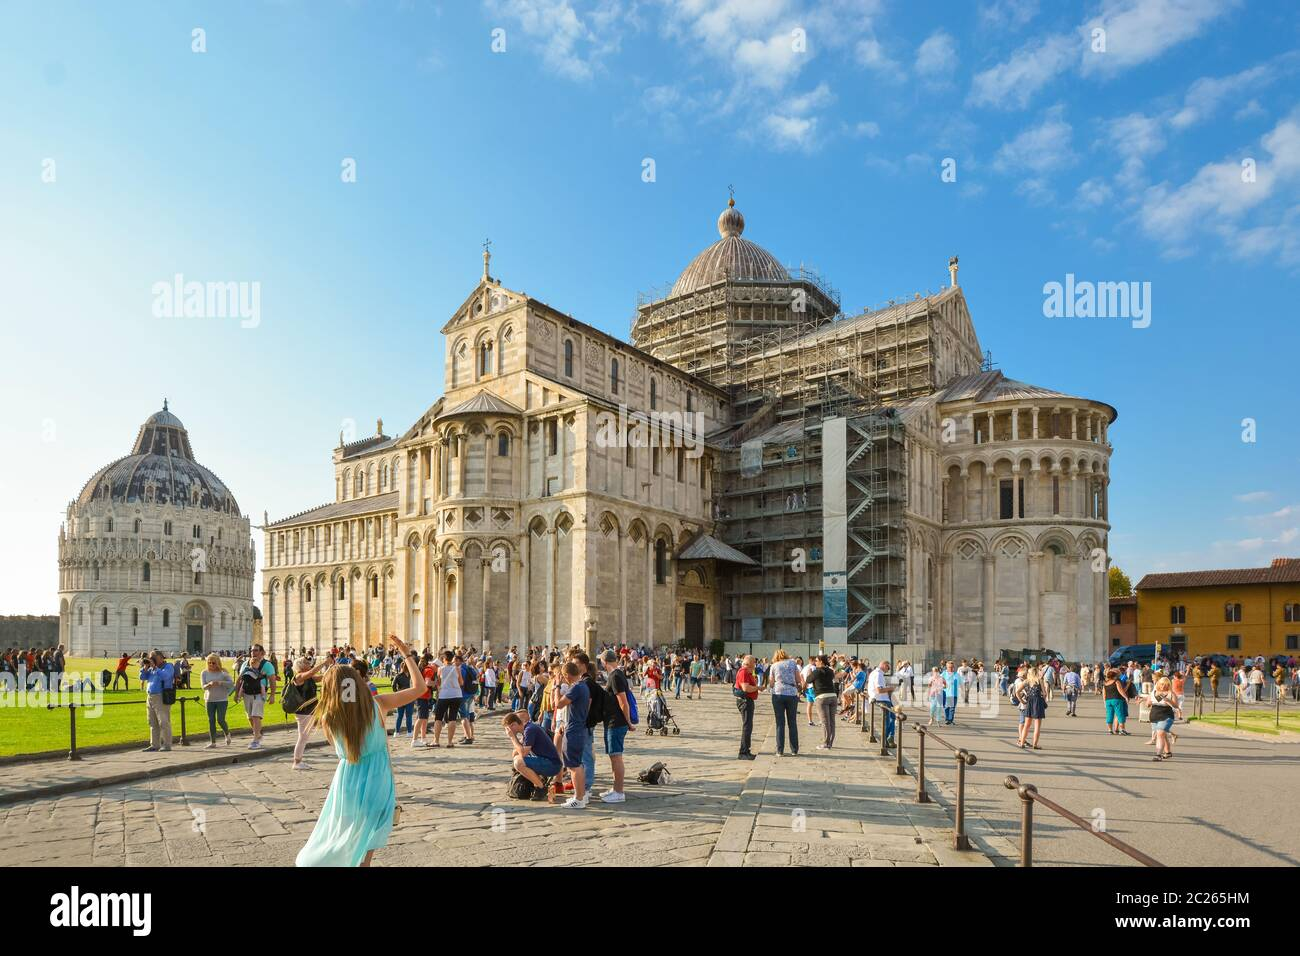 Tourists pose in front of the Pisa Duomo cathedral in the main piazza near the Leaning Tower in Pisa, Italy Stock Photo